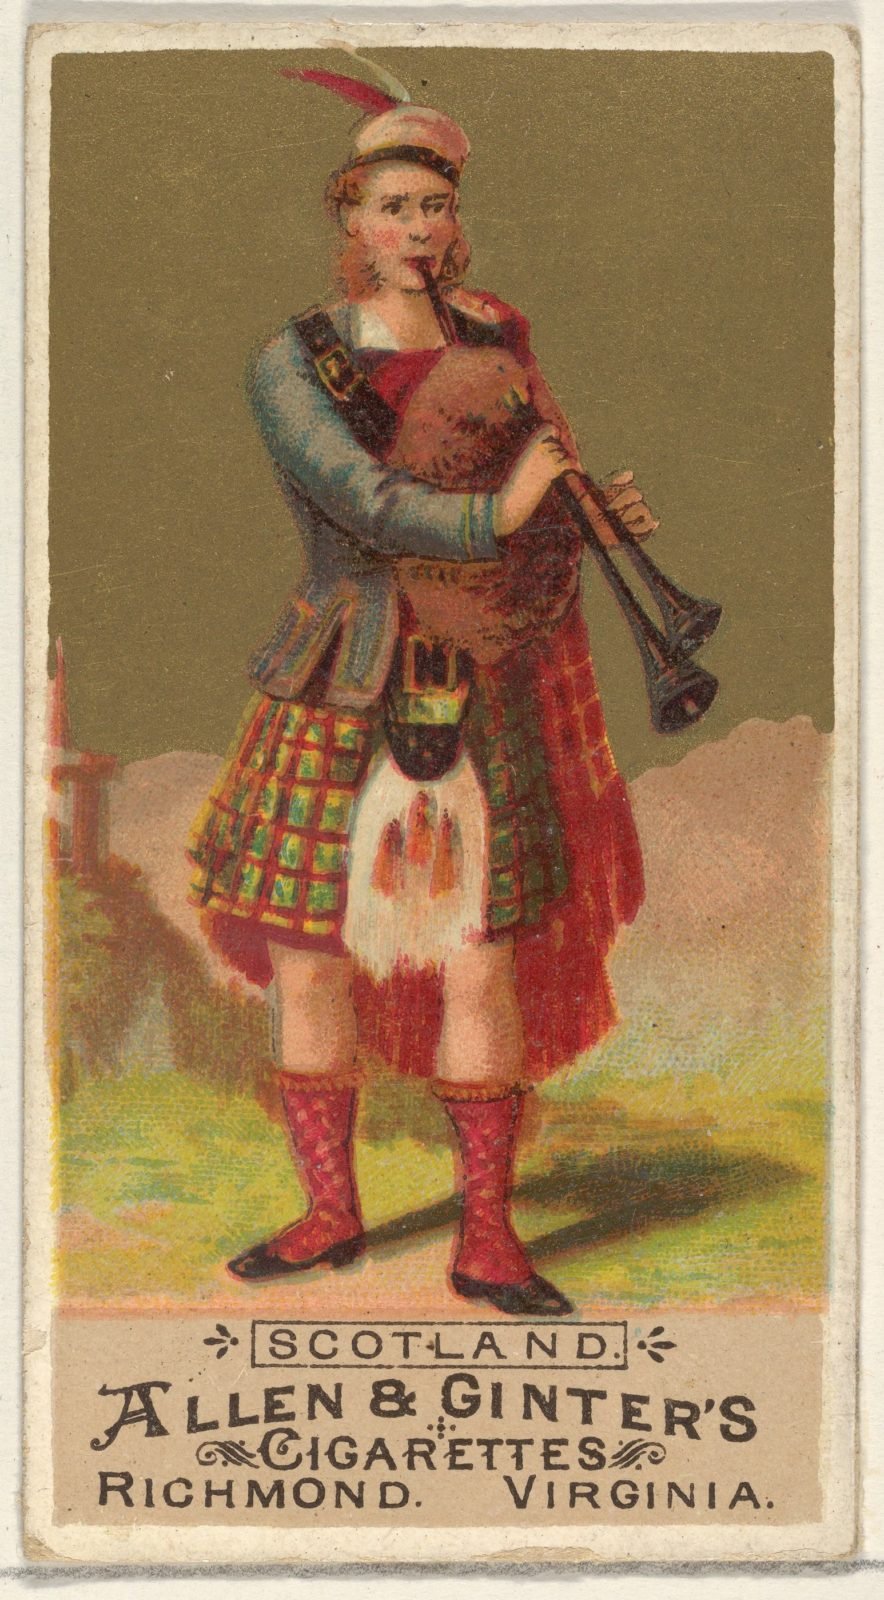 Scotland, from the Natives in Costume series (N16) for Allen & Ginter Cigarettes Brands